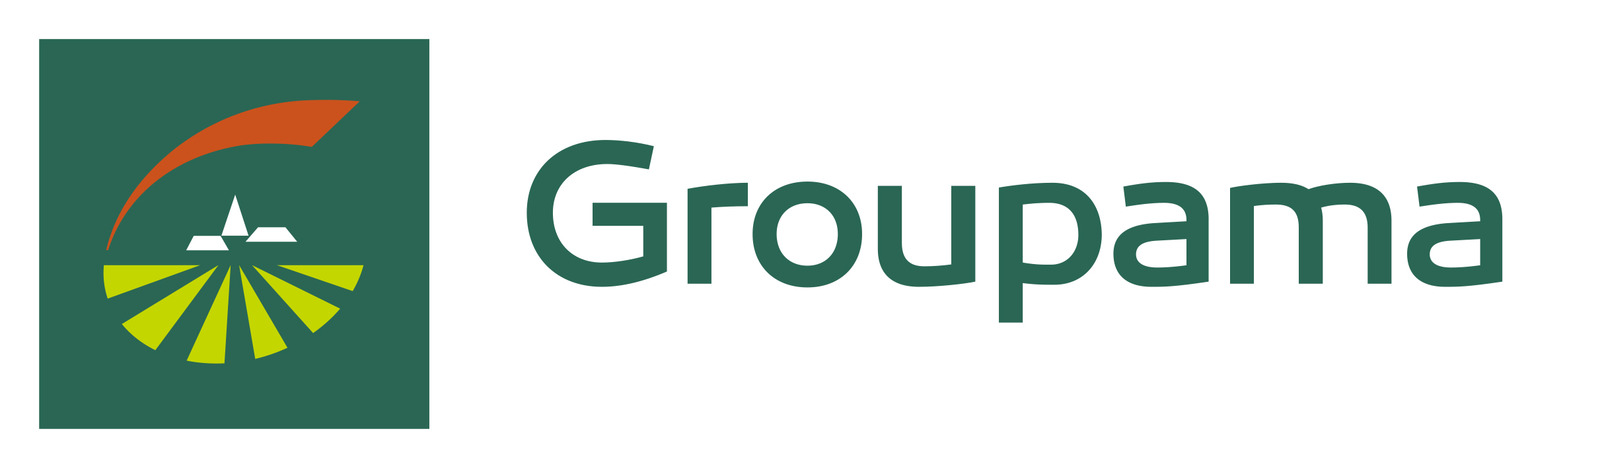 Groupama fb rvb